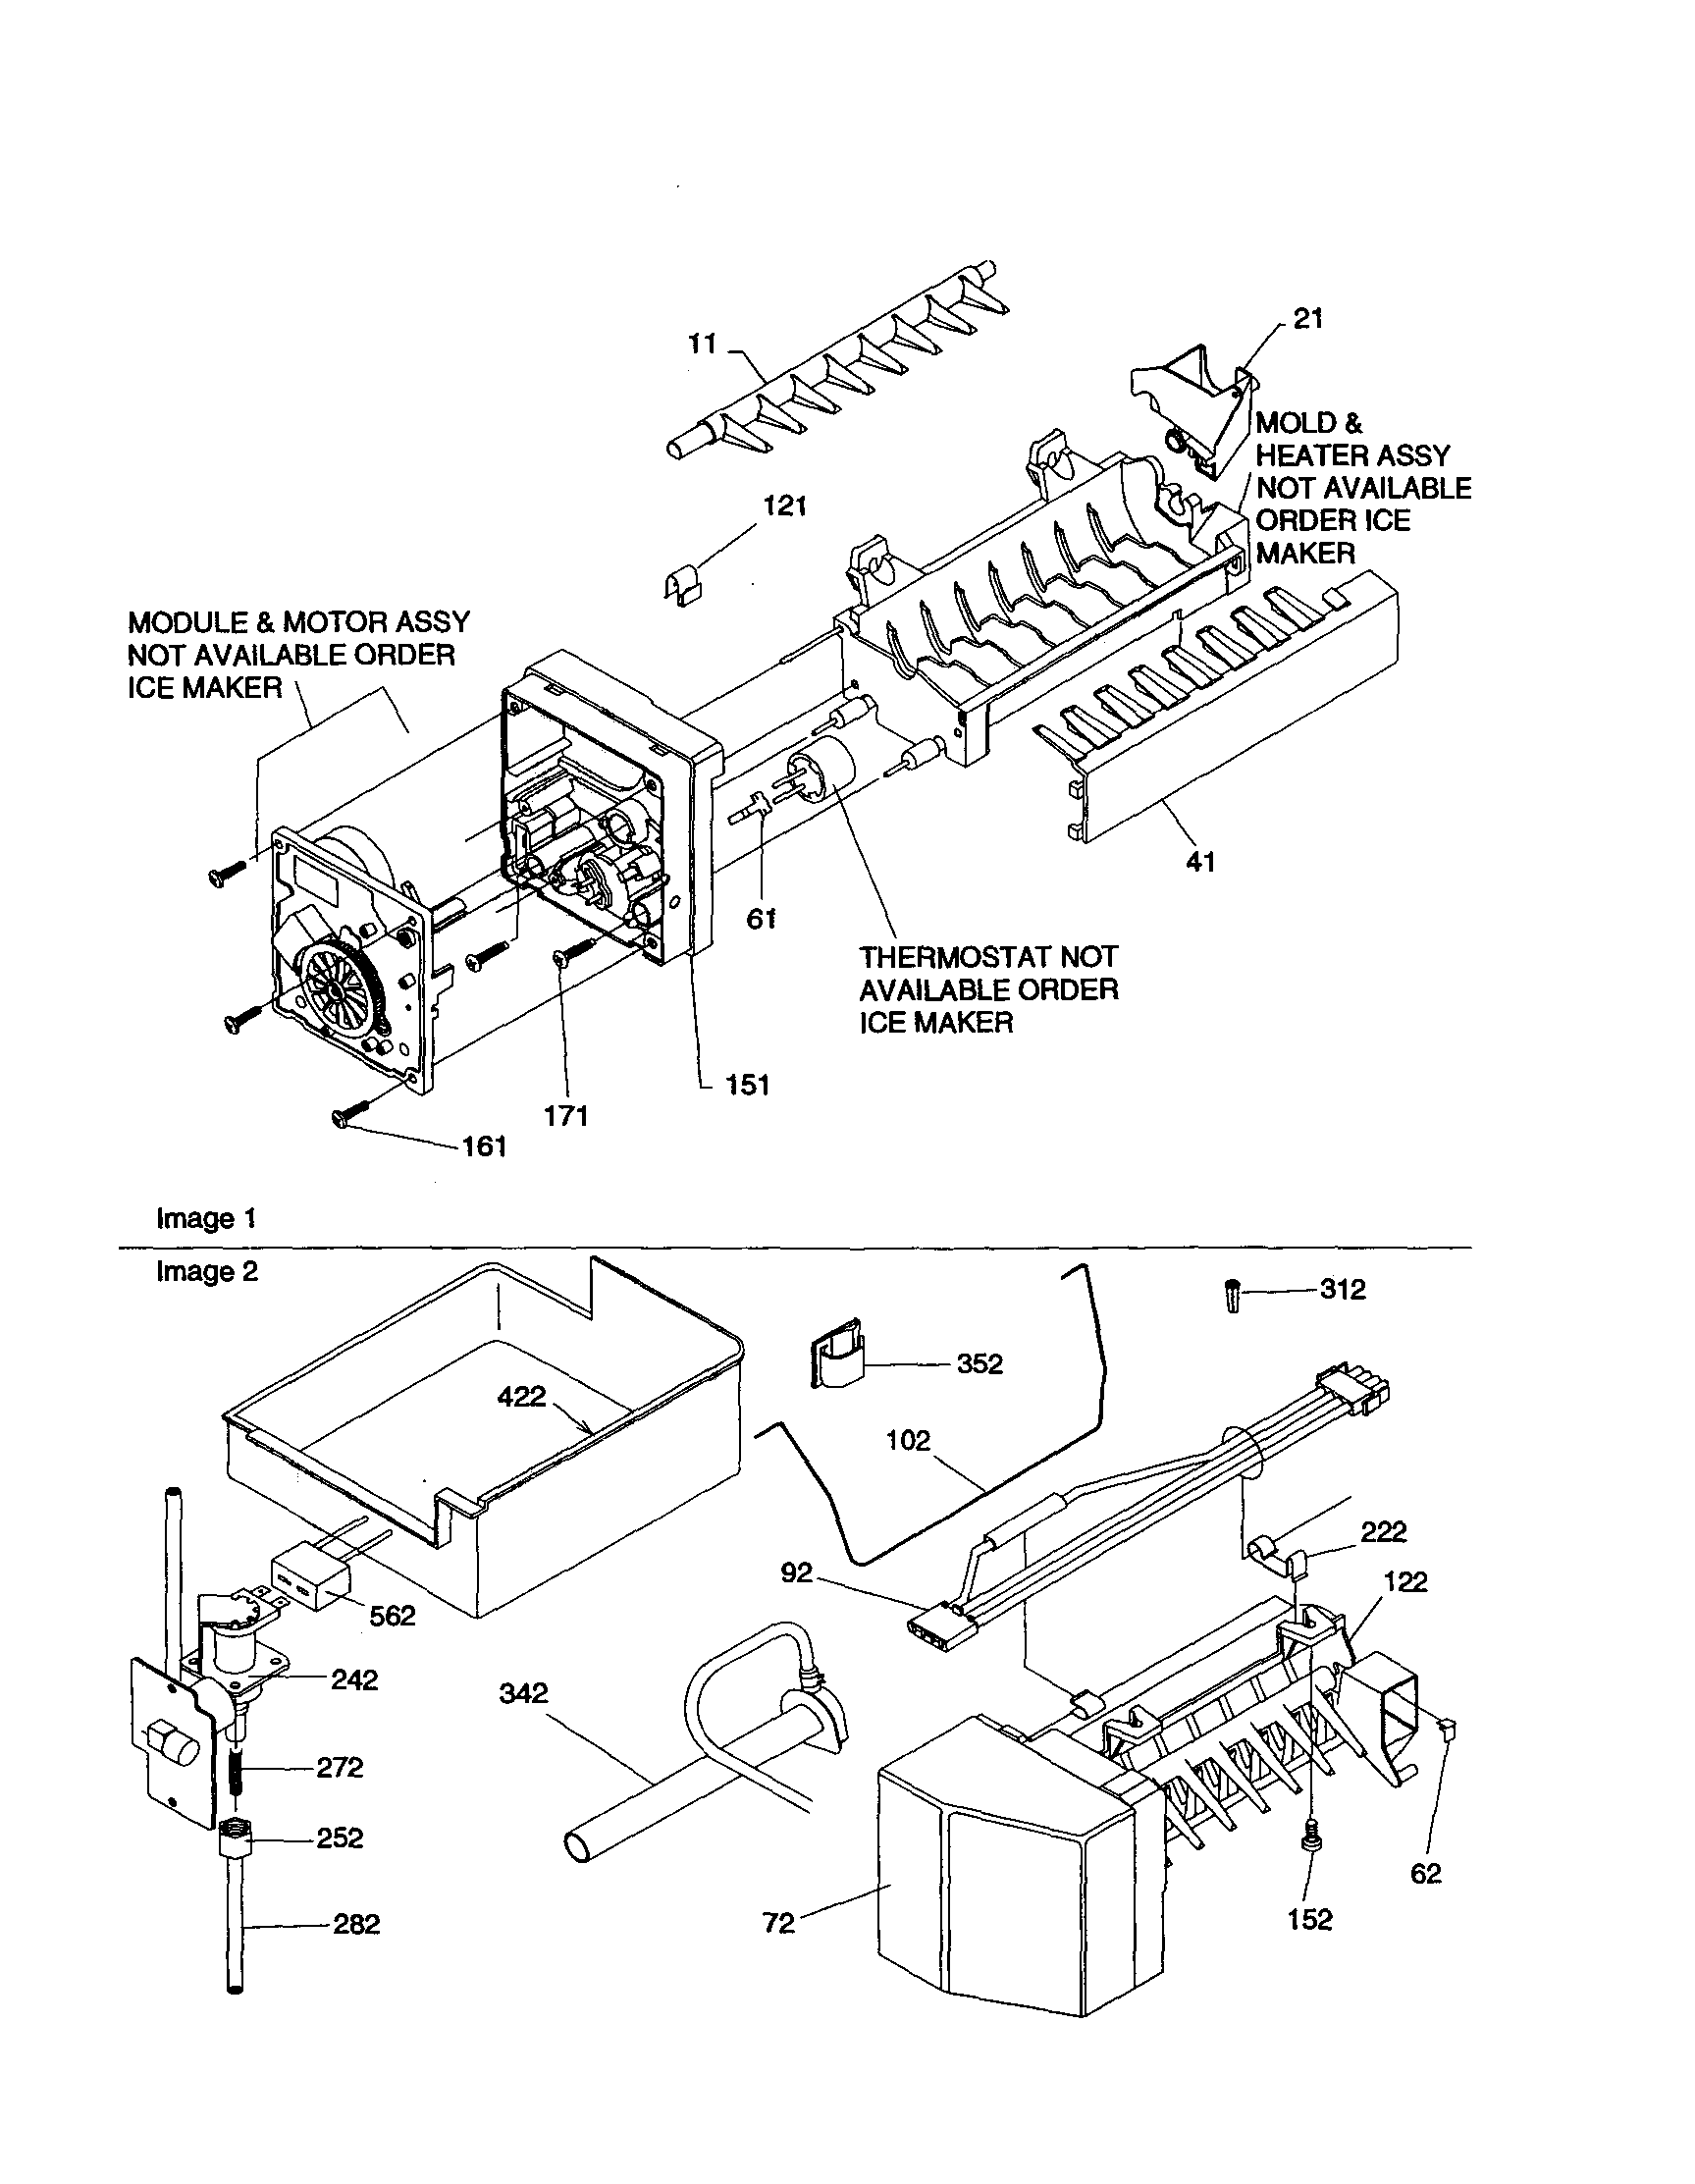 ICE MAKER ASSEMBLY Diagram & Parts List for Model